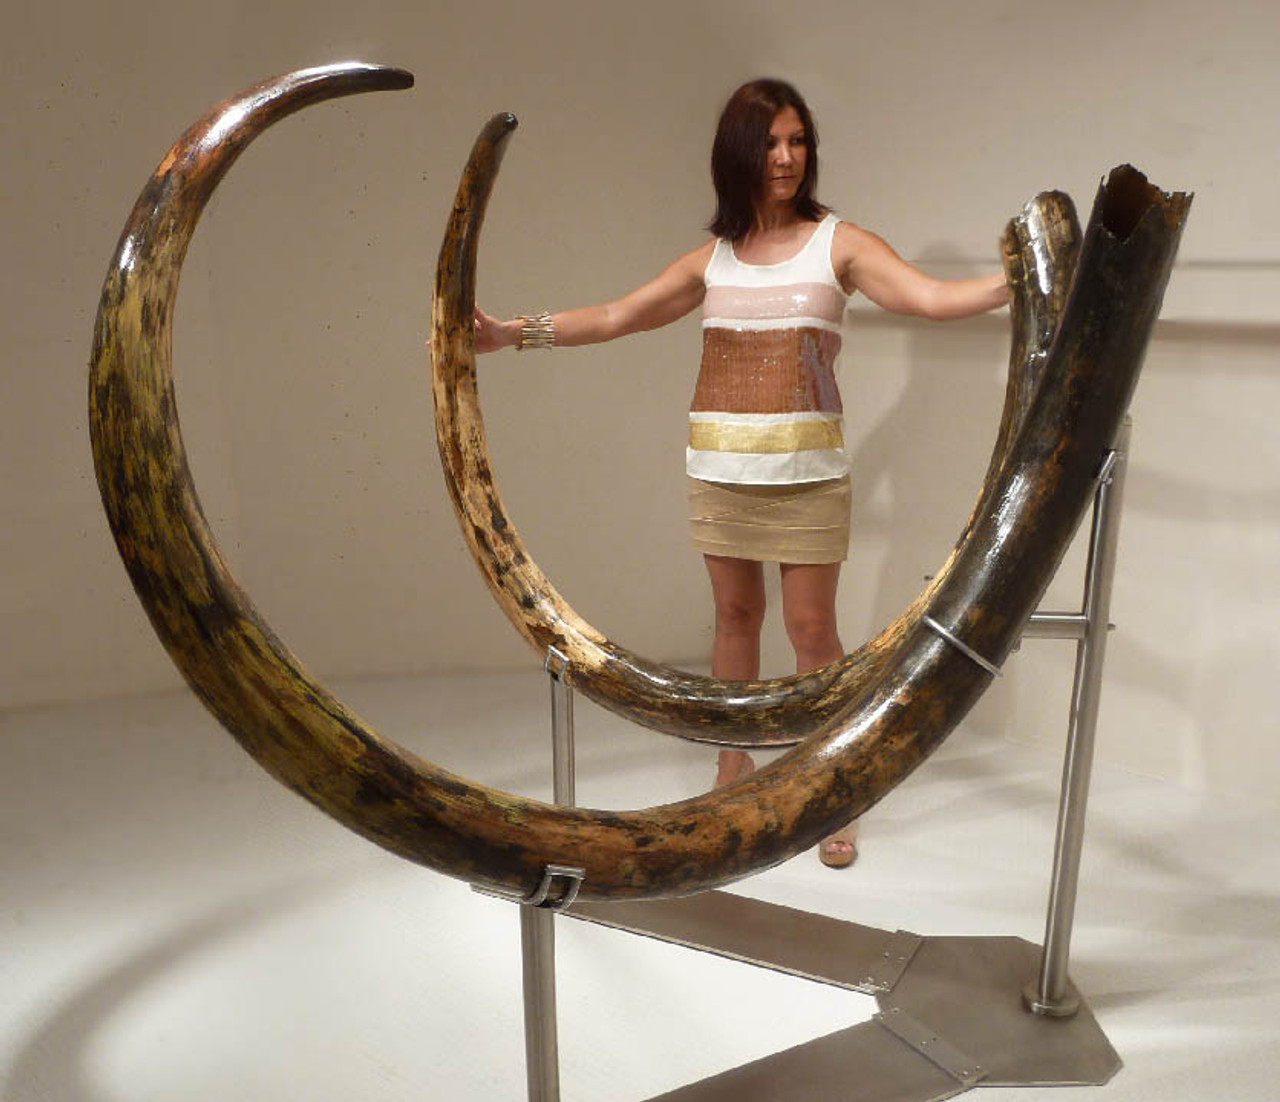 LARGEST PAIR OF MAMMOTH TUSKS